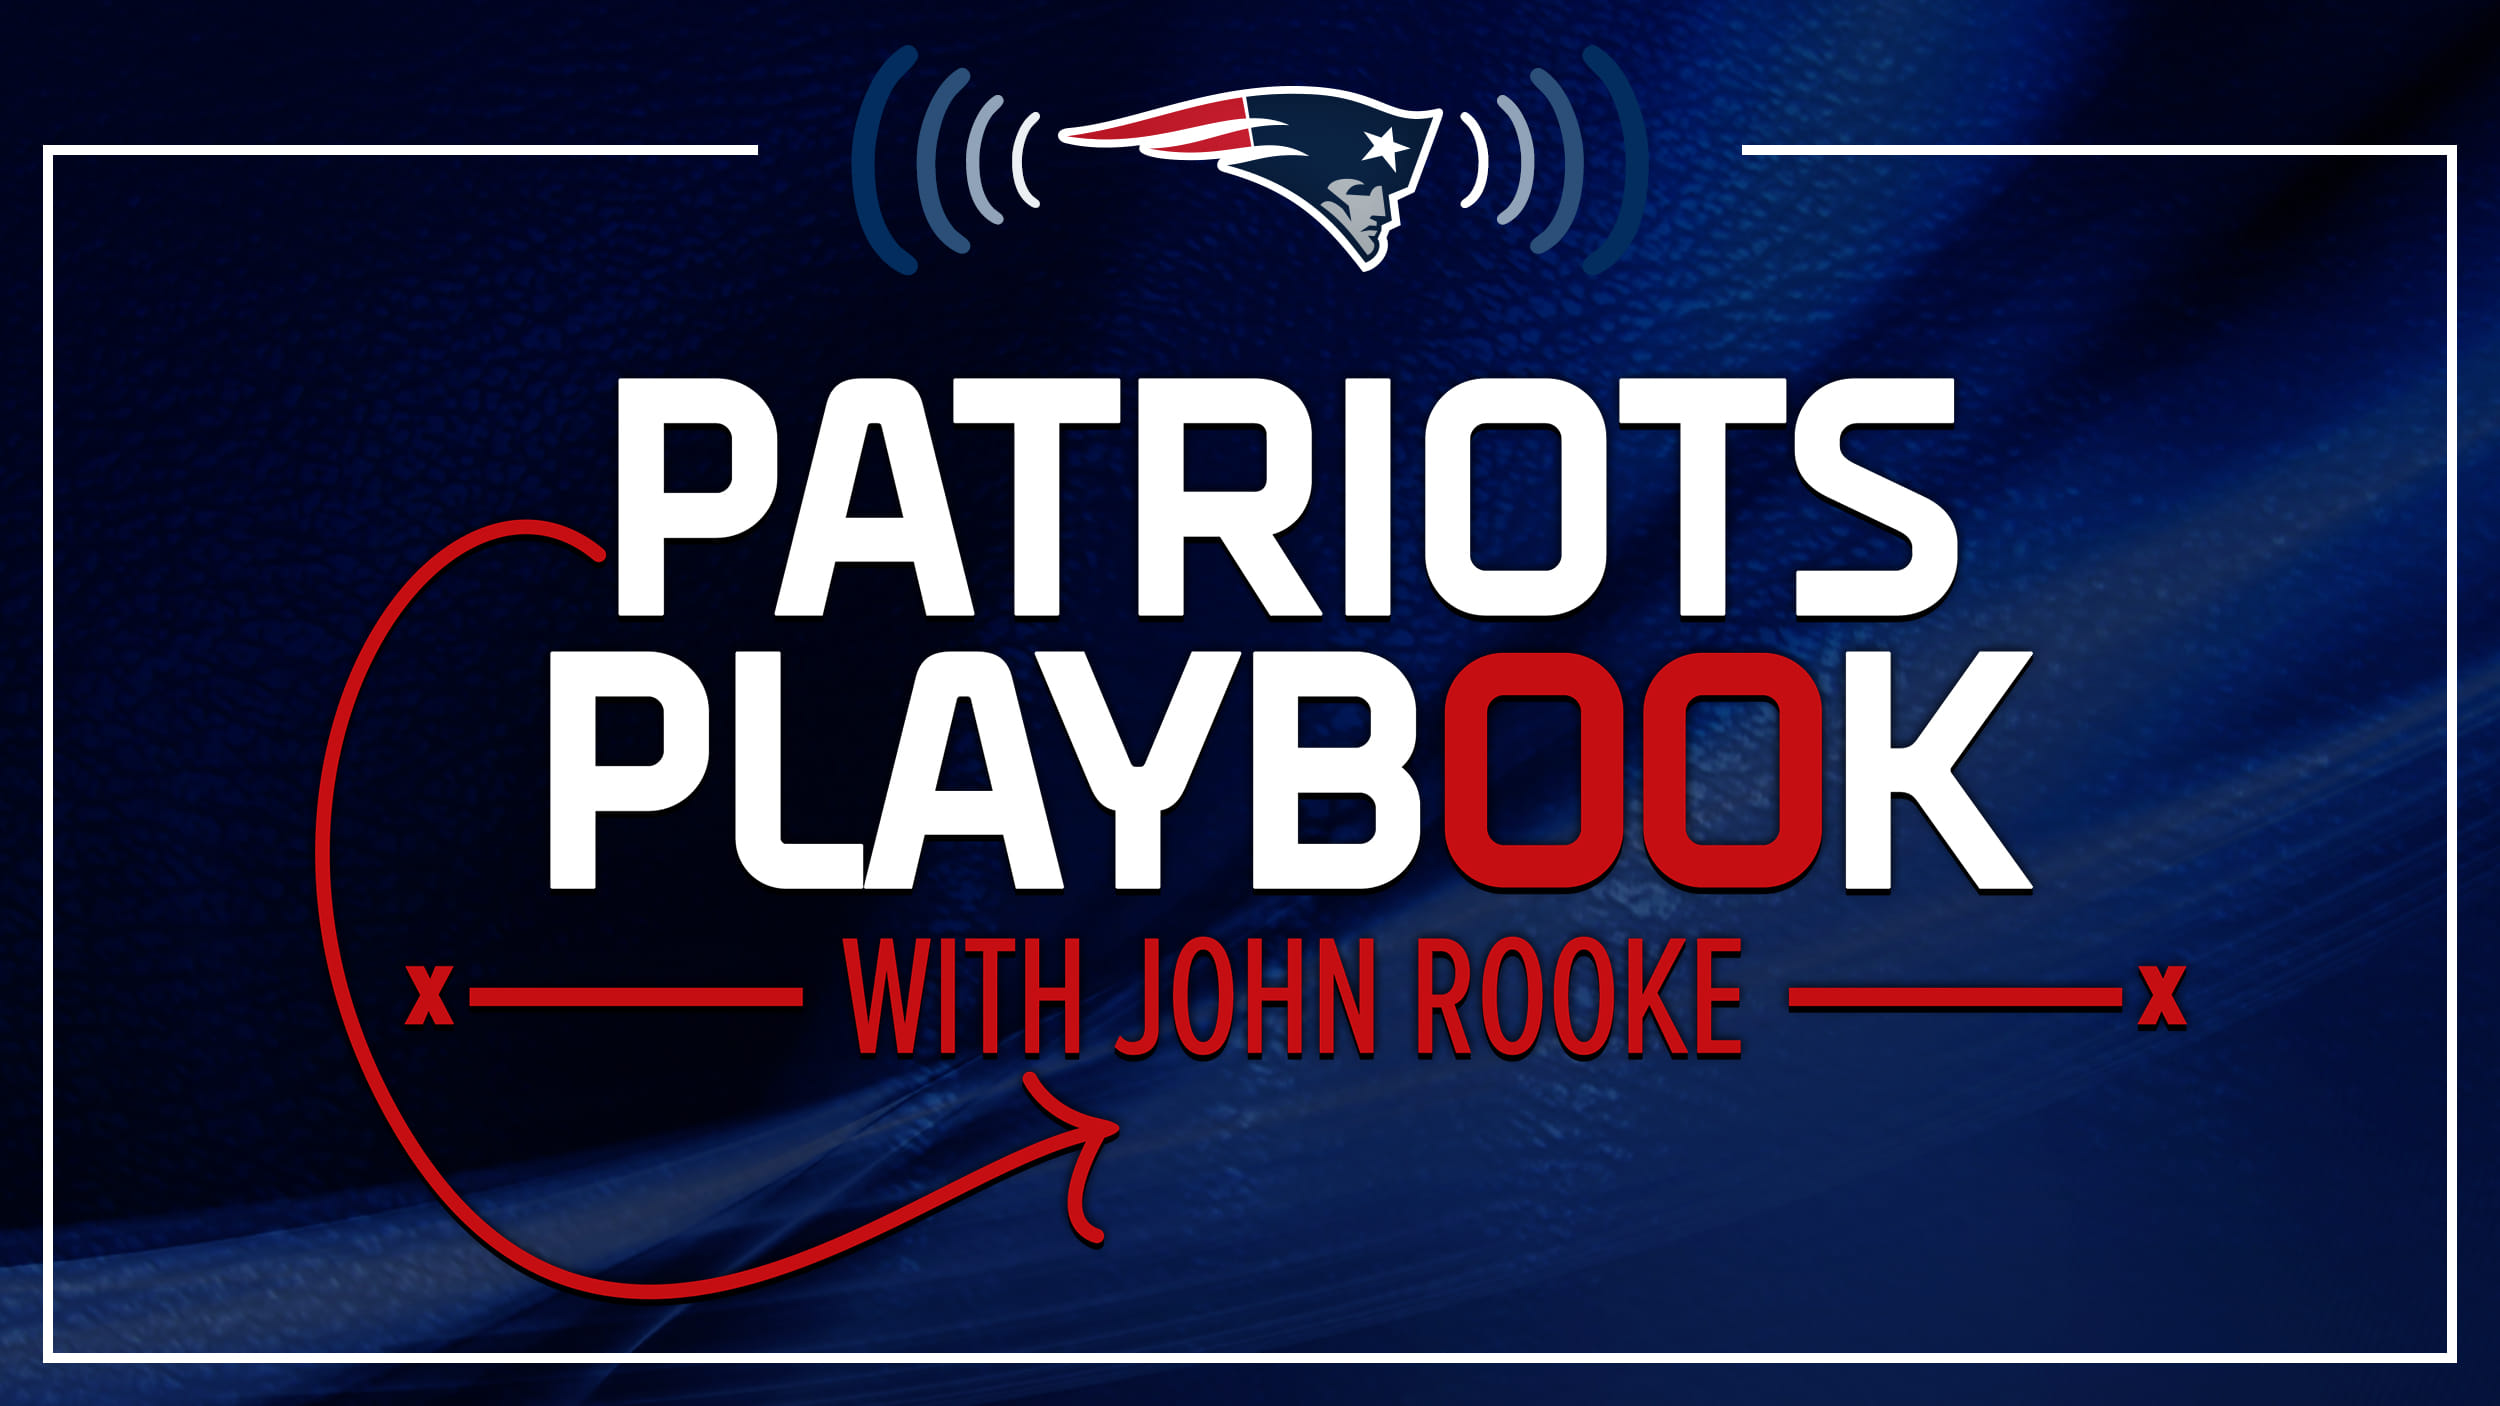 Patriots Playbook (Tuesday - Thursday In-Season, 2pm ET)